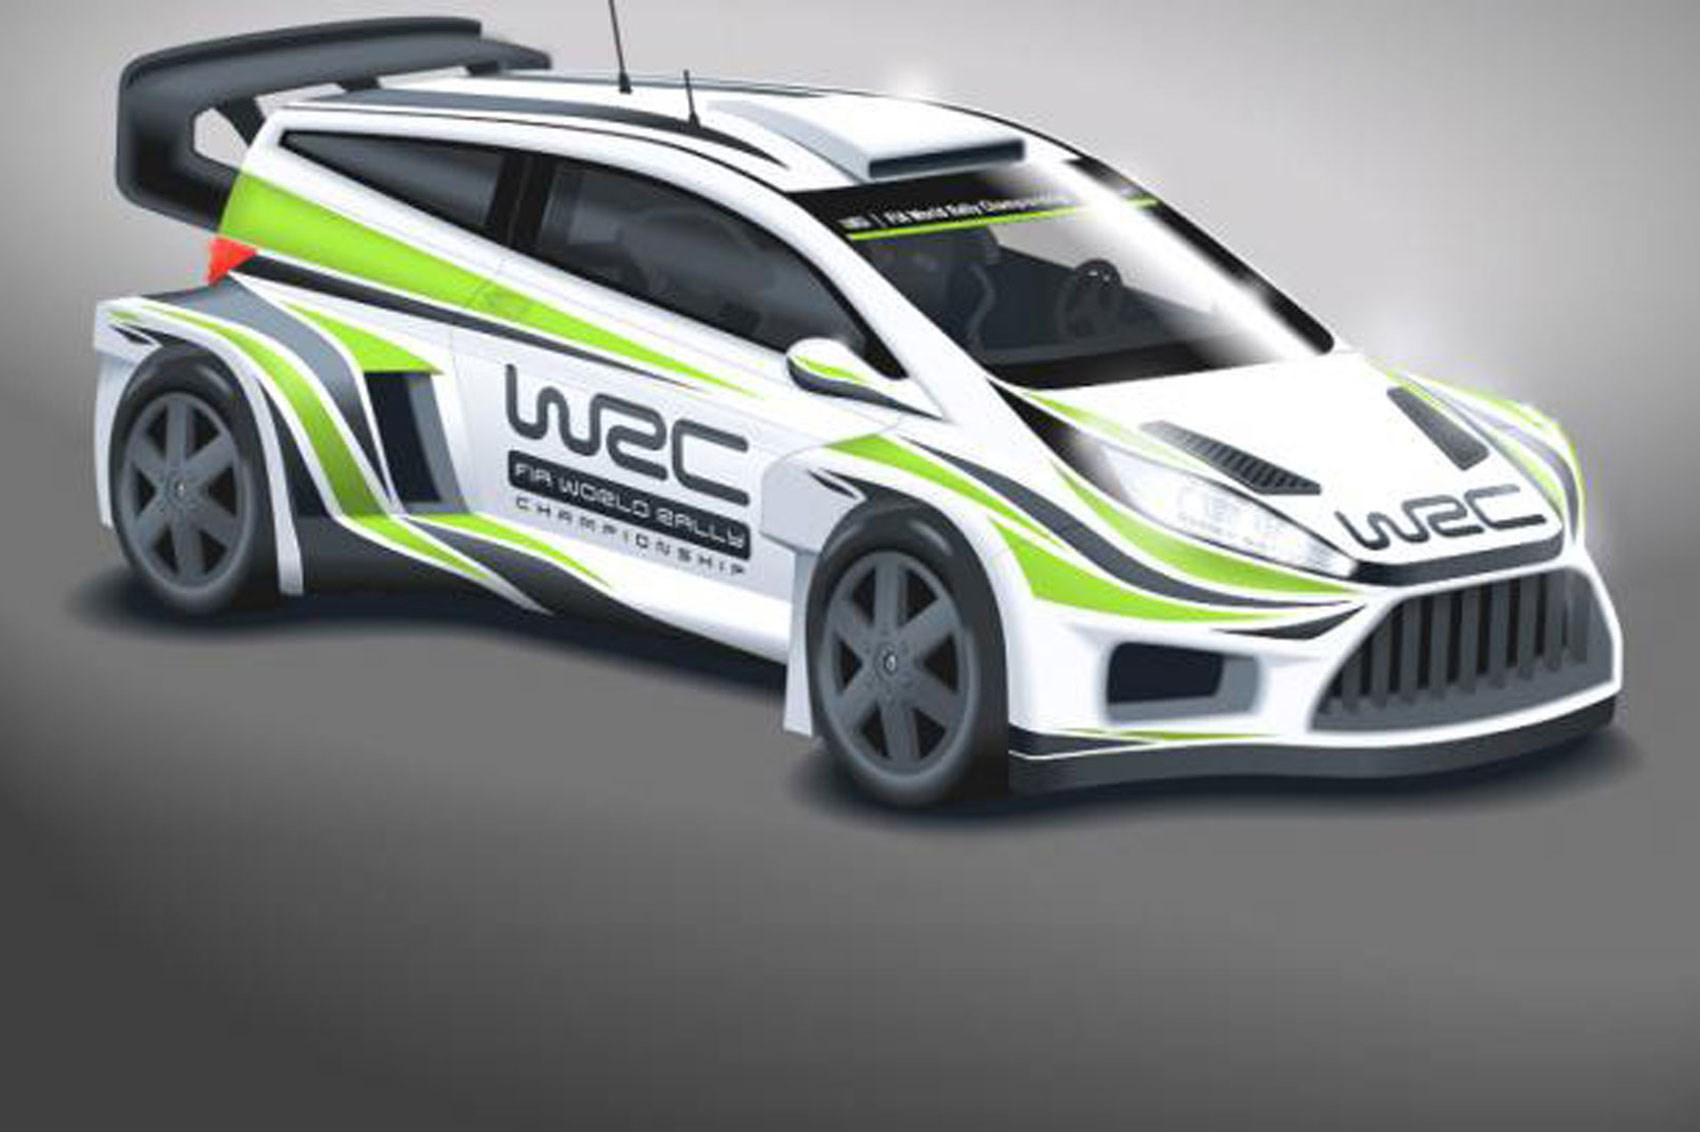 Ultrablogus  Pleasing Wild New Look For Wrc Cars In  By Car Magazine With Interesting Wrc Cars Will Get Wider Bodies Bigger Wings And More Power For  With Extraordinary Toyota Tundra  Interior Also Toyota Van Interior In Addition  Nissan Altima Interior And Dodge Dakota Interior As Well As Interior Design Automotive Additionally Lincoln Mkt Interior Photos From Carmagazinecouk With Ultrablogus  Interesting Wild New Look For Wrc Cars In  By Car Magazine With Extraordinary Wrc Cars Will Get Wider Bodies Bigger Wings And More Power For  And Pleasing Toyota Tundra  Interior Also Toyota Van Interior In Addition  Nissan Altima Interior From Carmagazinecouk